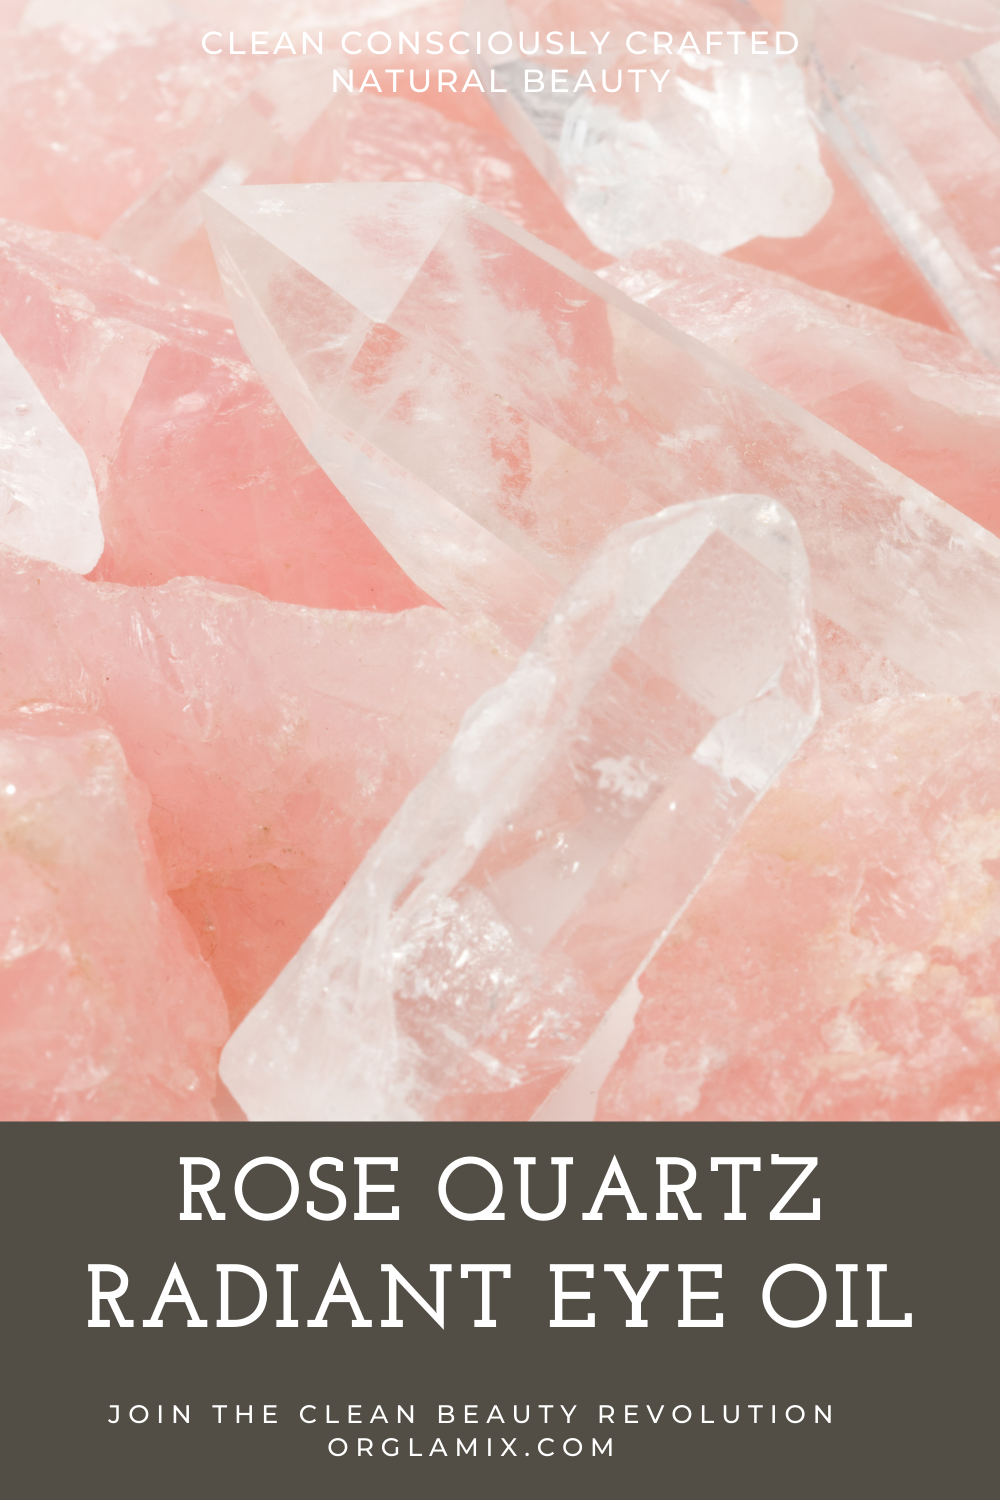 New Rose Quartz Radiant Eye Oil | Orglamix